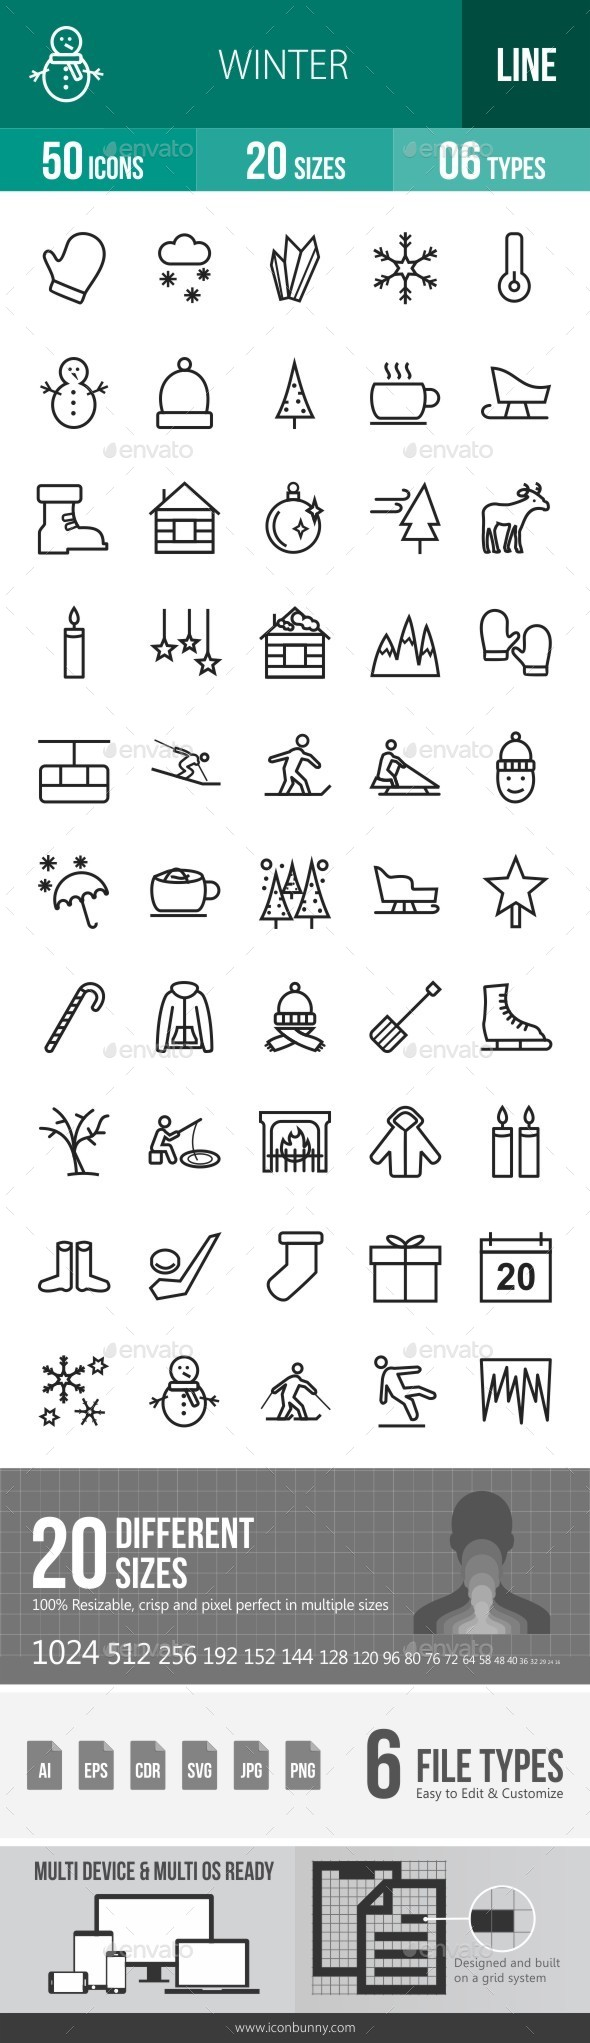 Winter Line Icons - Icons